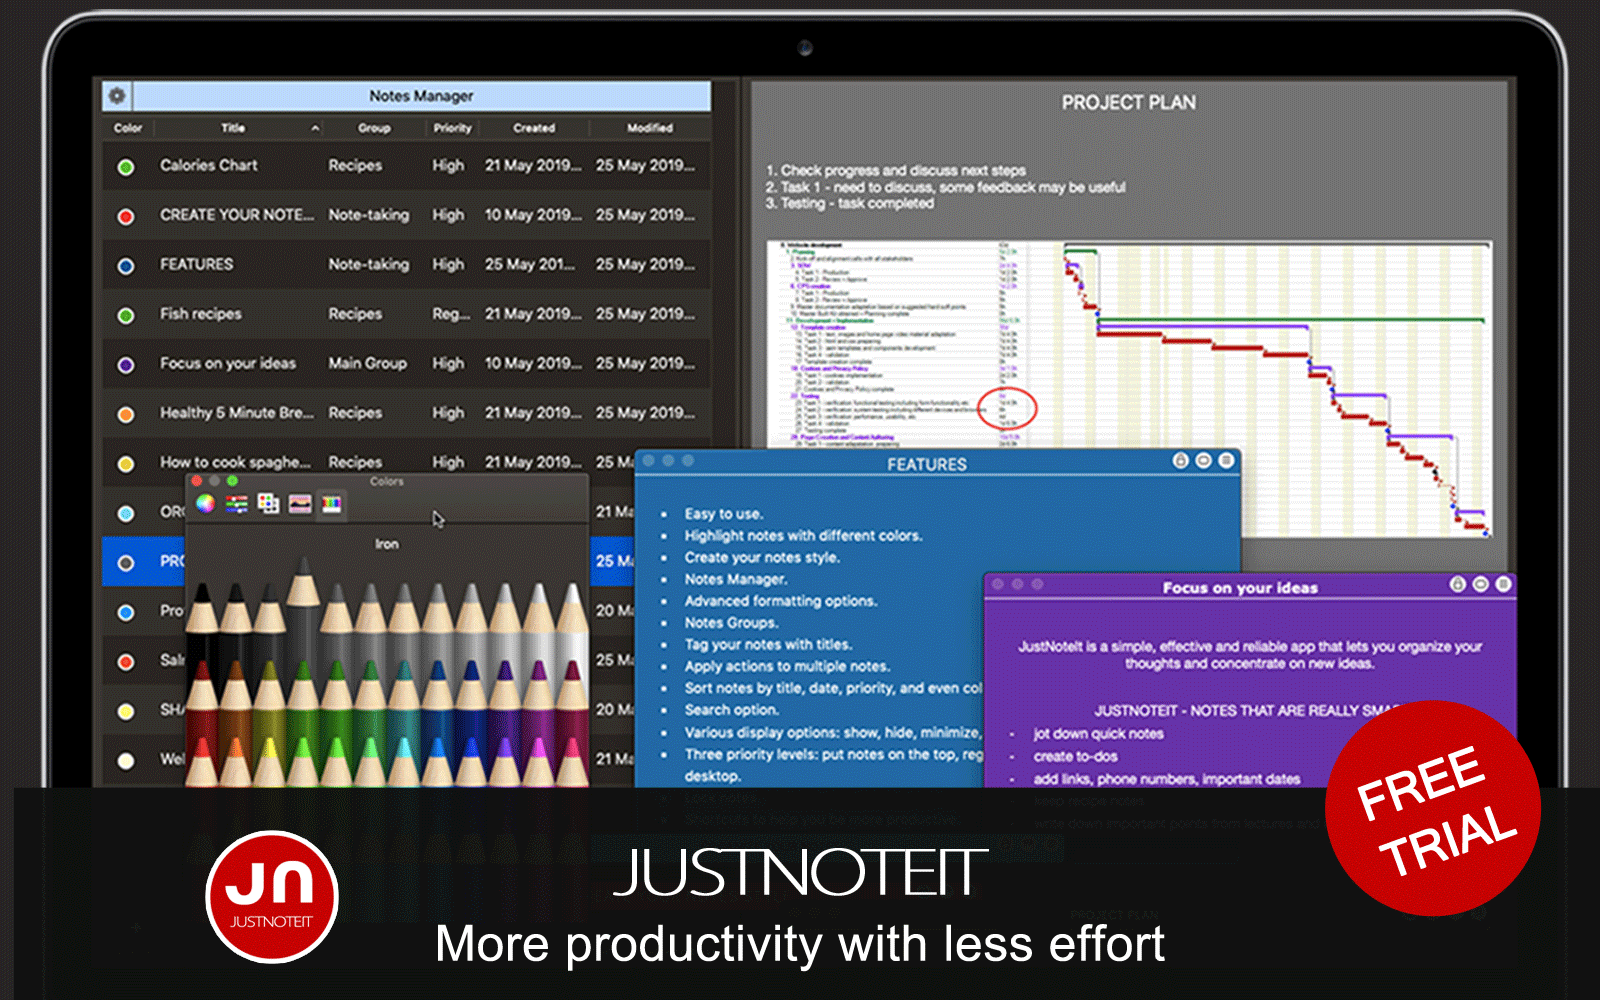 JustNoteIt - Note taking solution for professionals